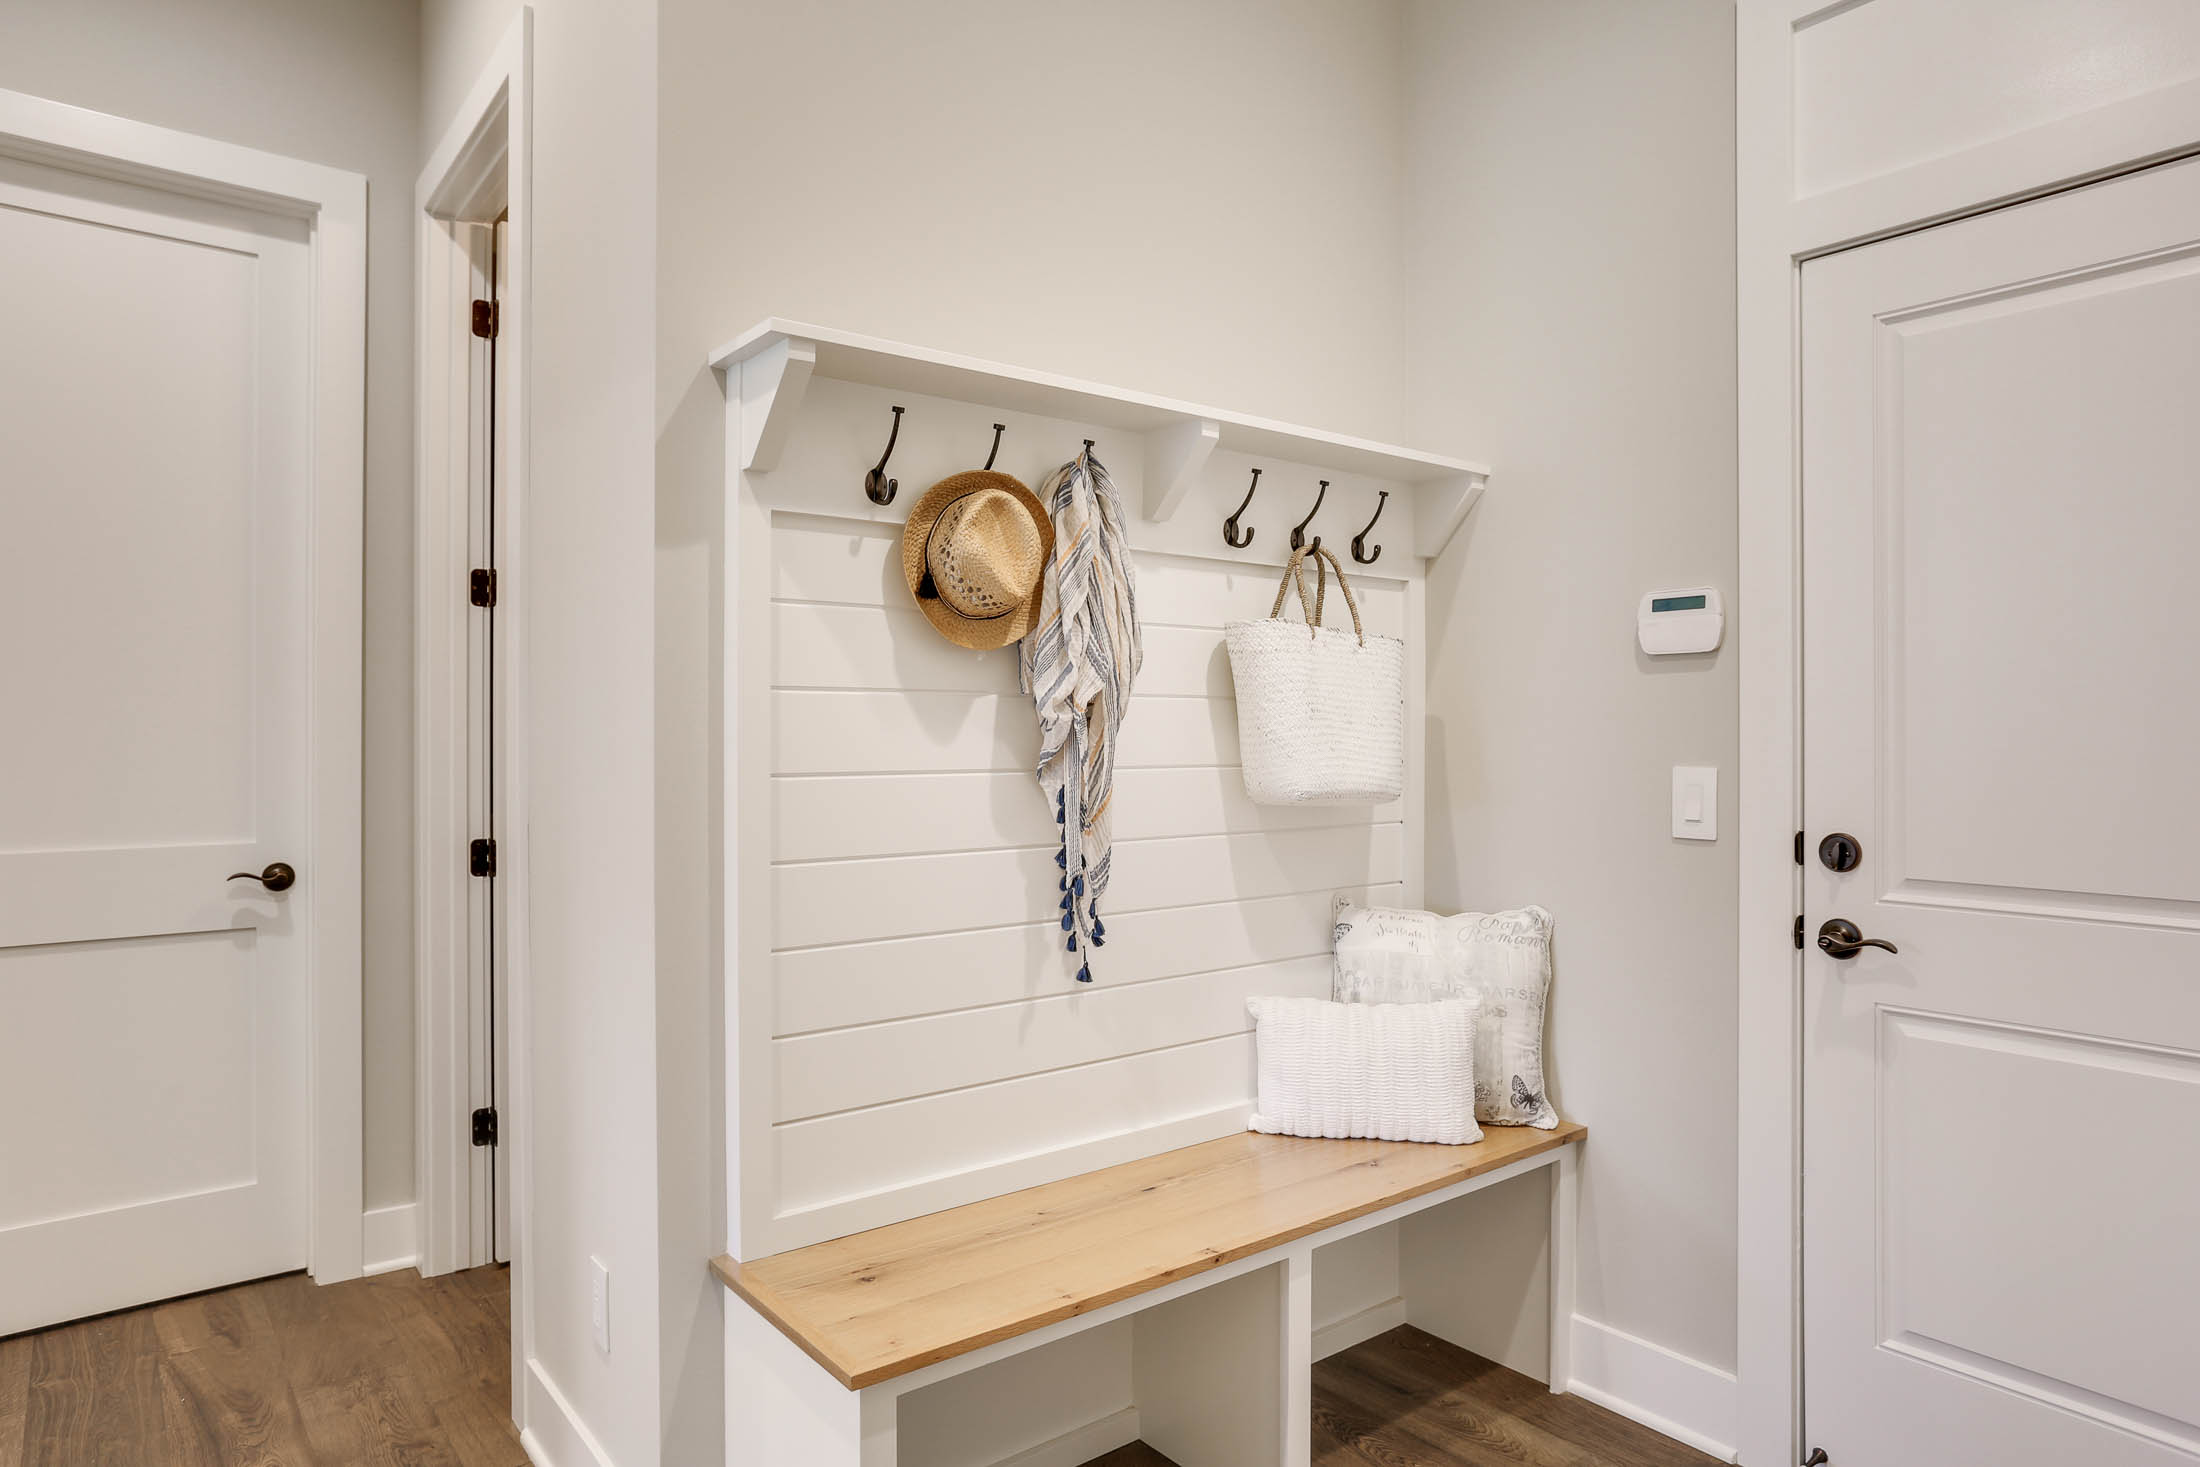 Built-in bench with cubbies and coat rack